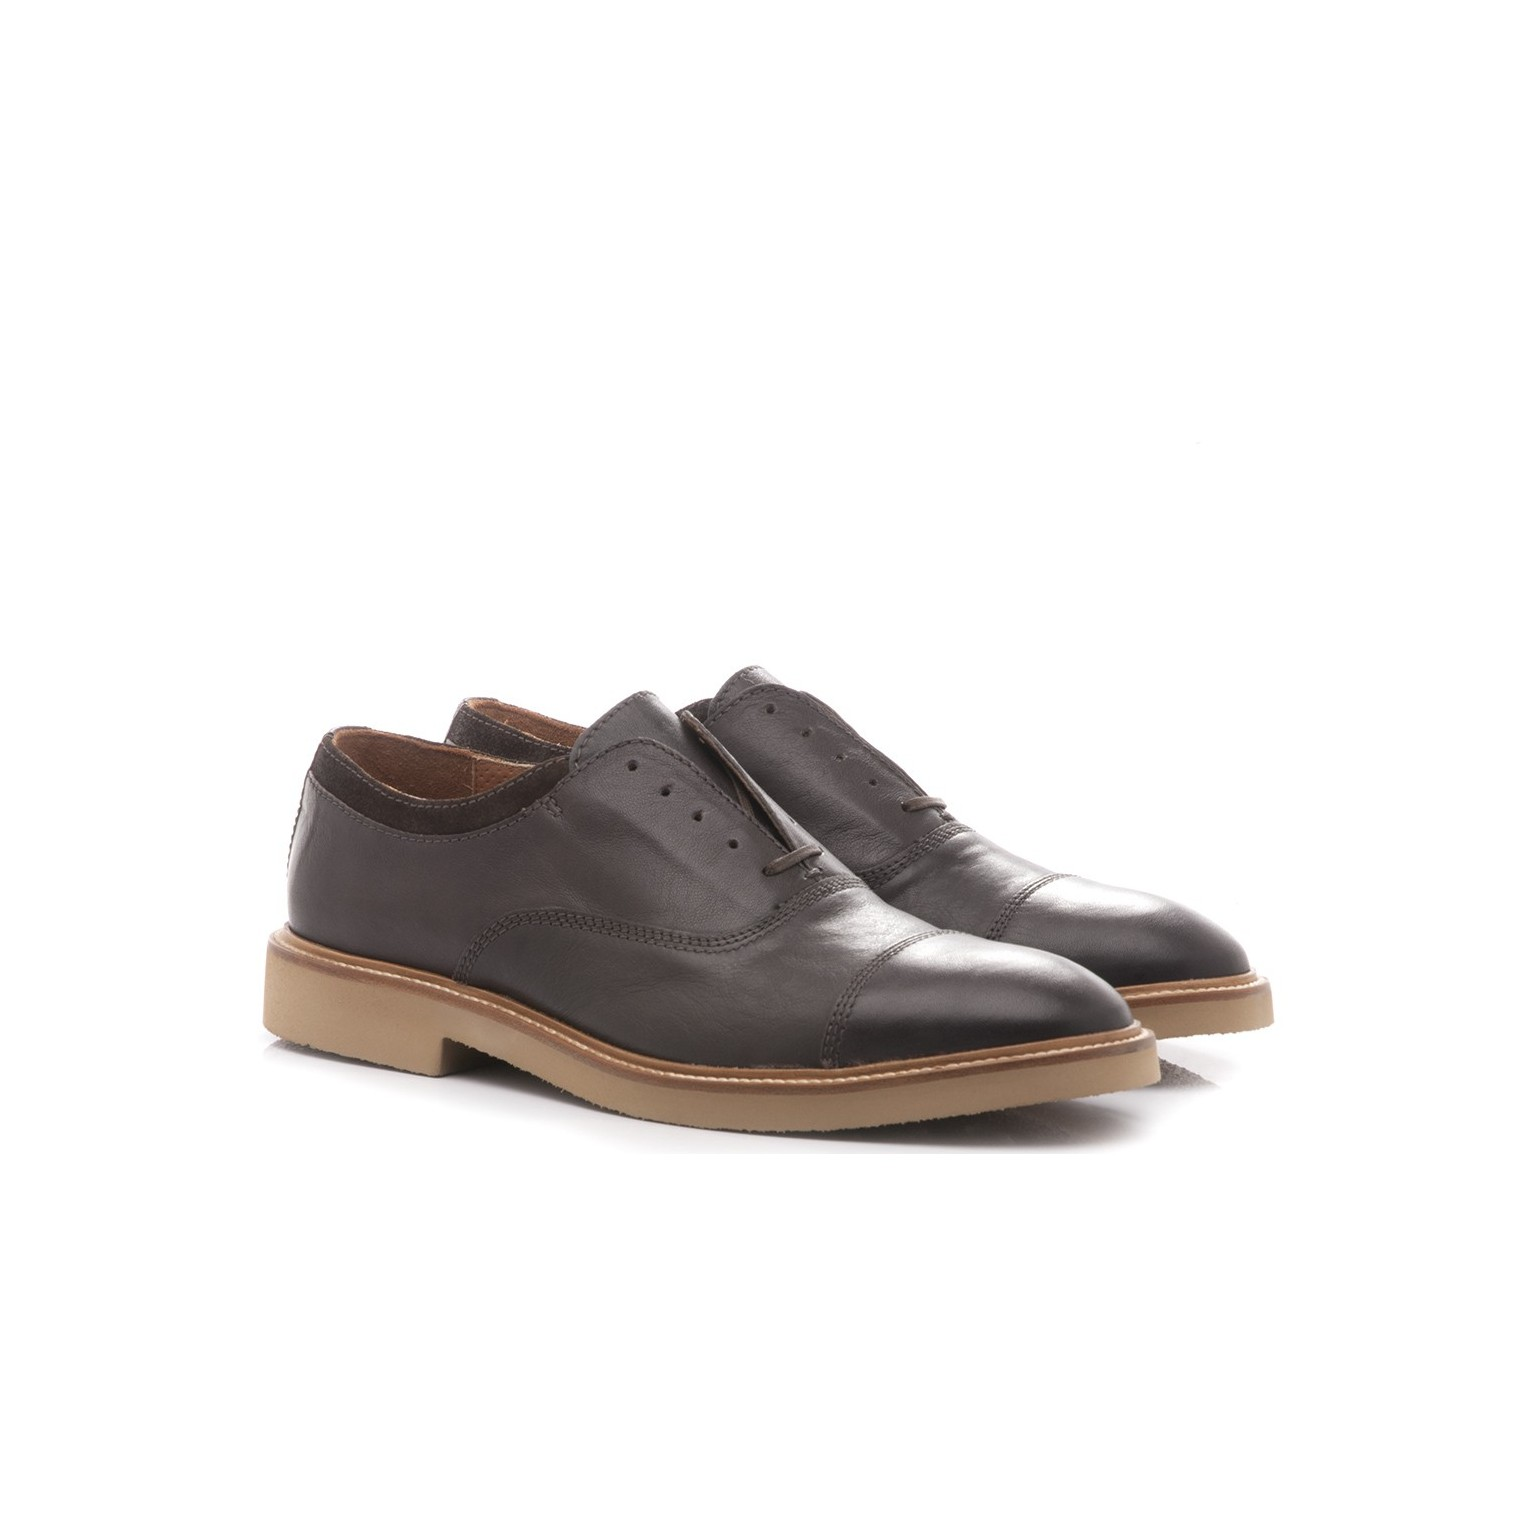 maritan-g-men-s-classic-shoes-gonzalo-brown-leather.jpg ab690730090